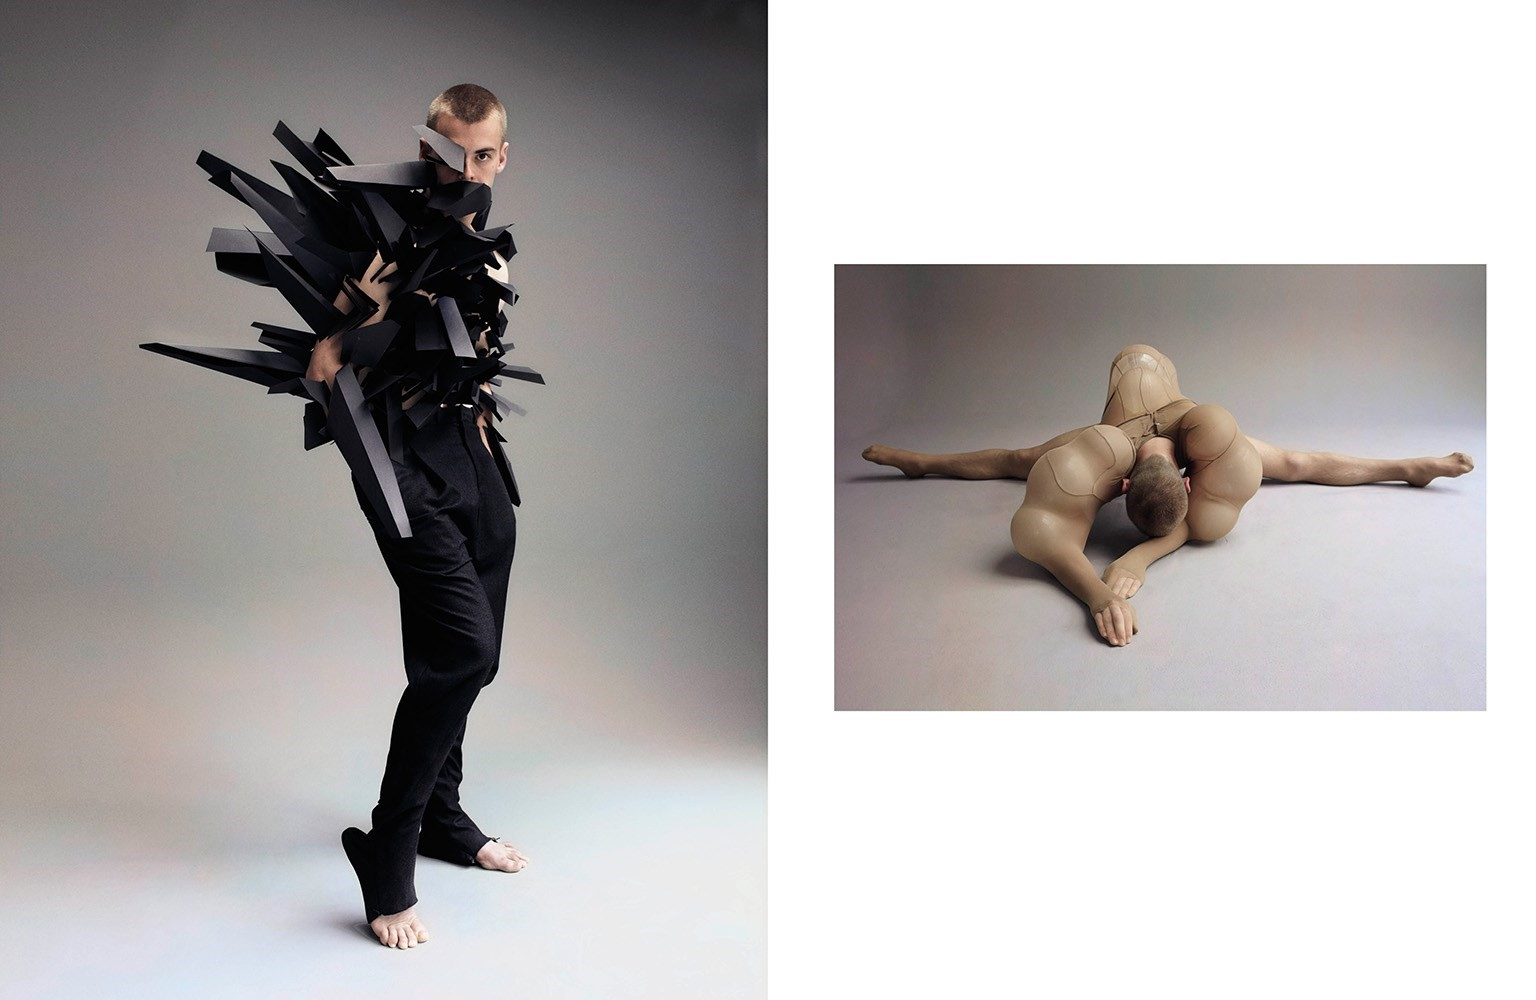 Nick Knight - SHOW studio - The Home of Fashion Film and Live Nick knight fashion body